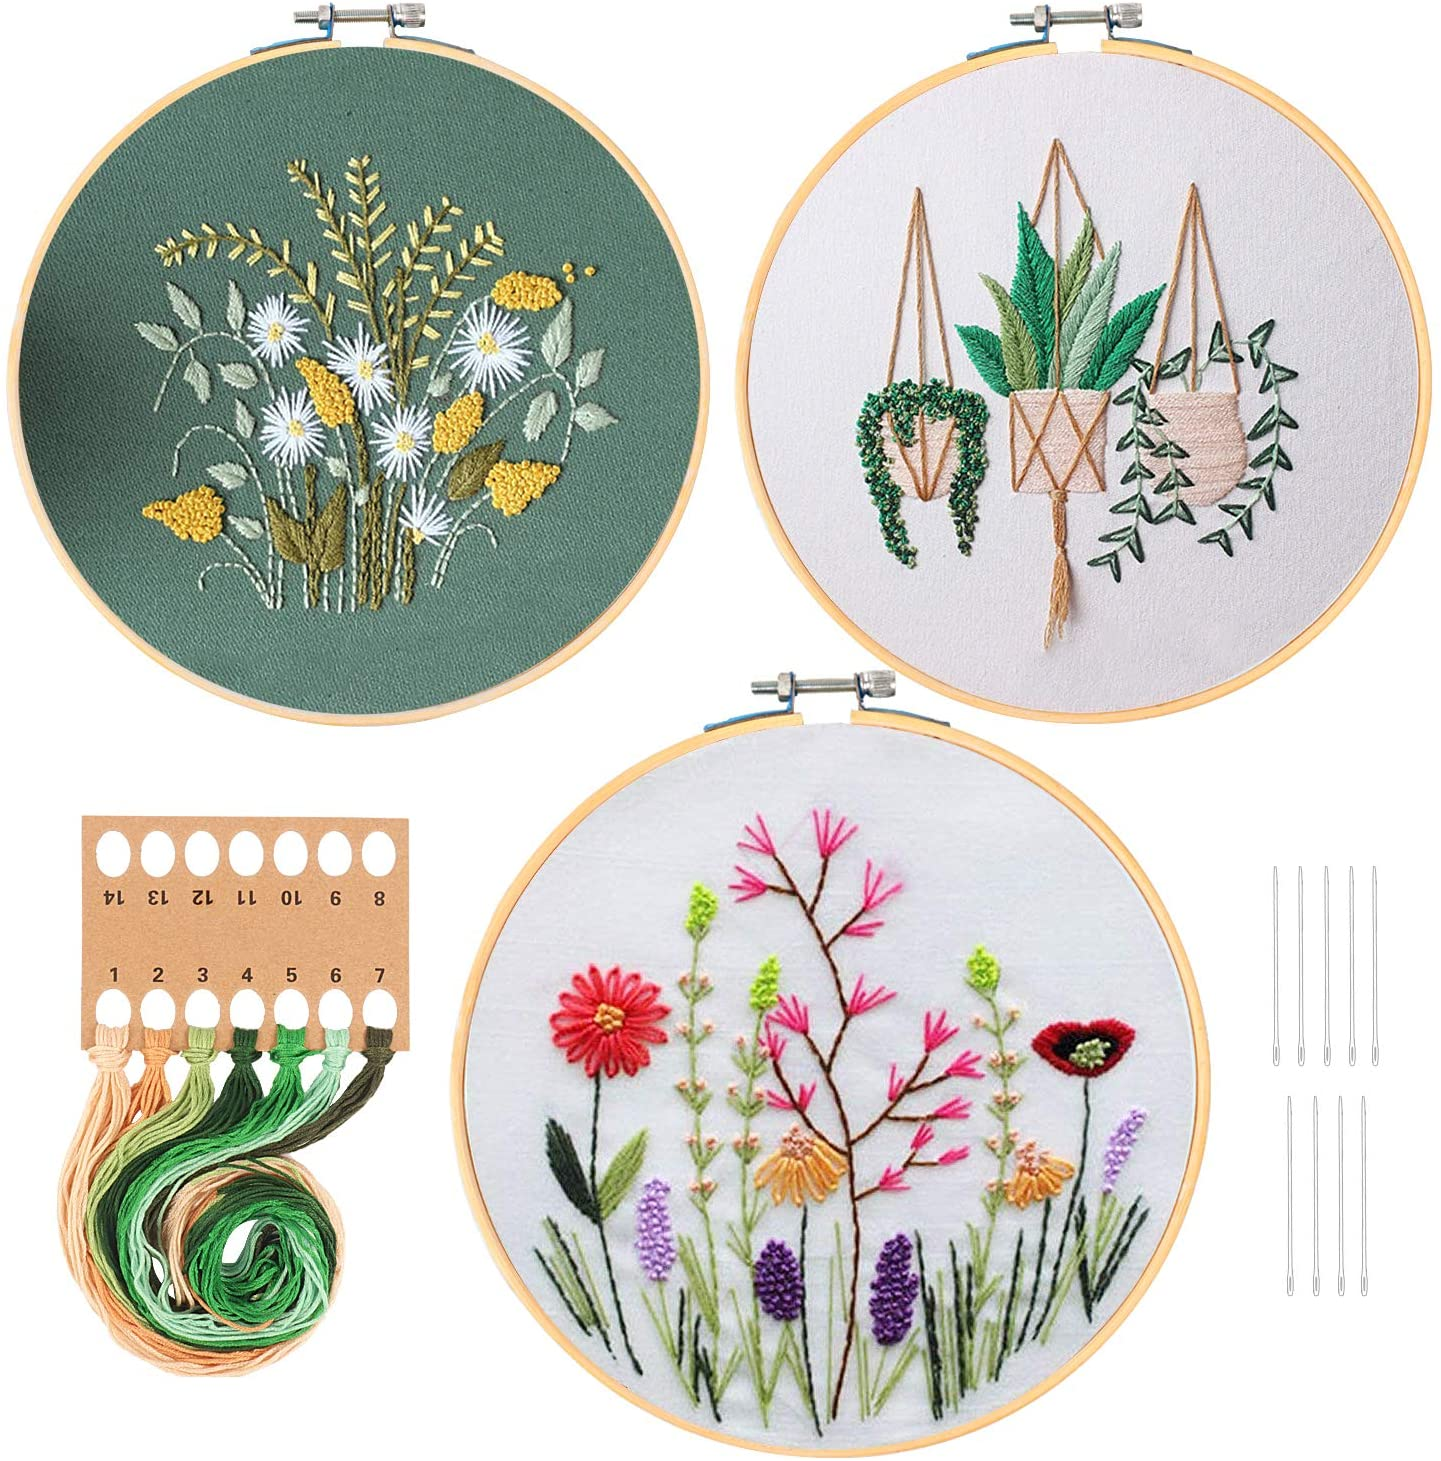 3 Sets Embroidery Starter Kit with Pattern and Instructions, Cross Stitch Kit Include 3 Embroidery Clothes with Floral Pattern, 3 Bamboo Embroidery Hoops, Color Threads and Tools